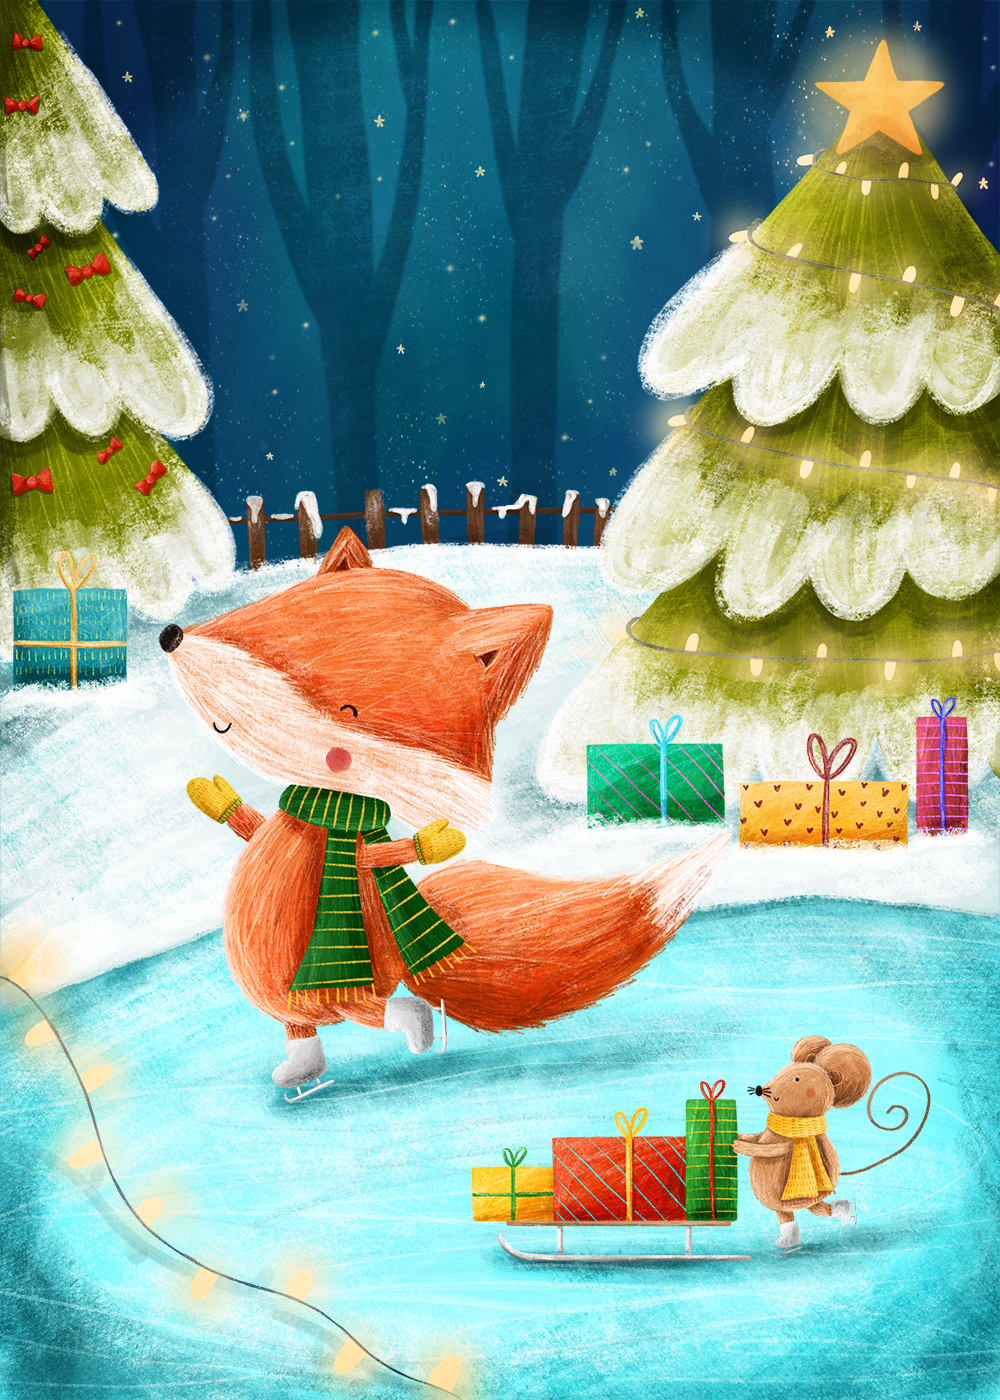 fox_card_2 copy